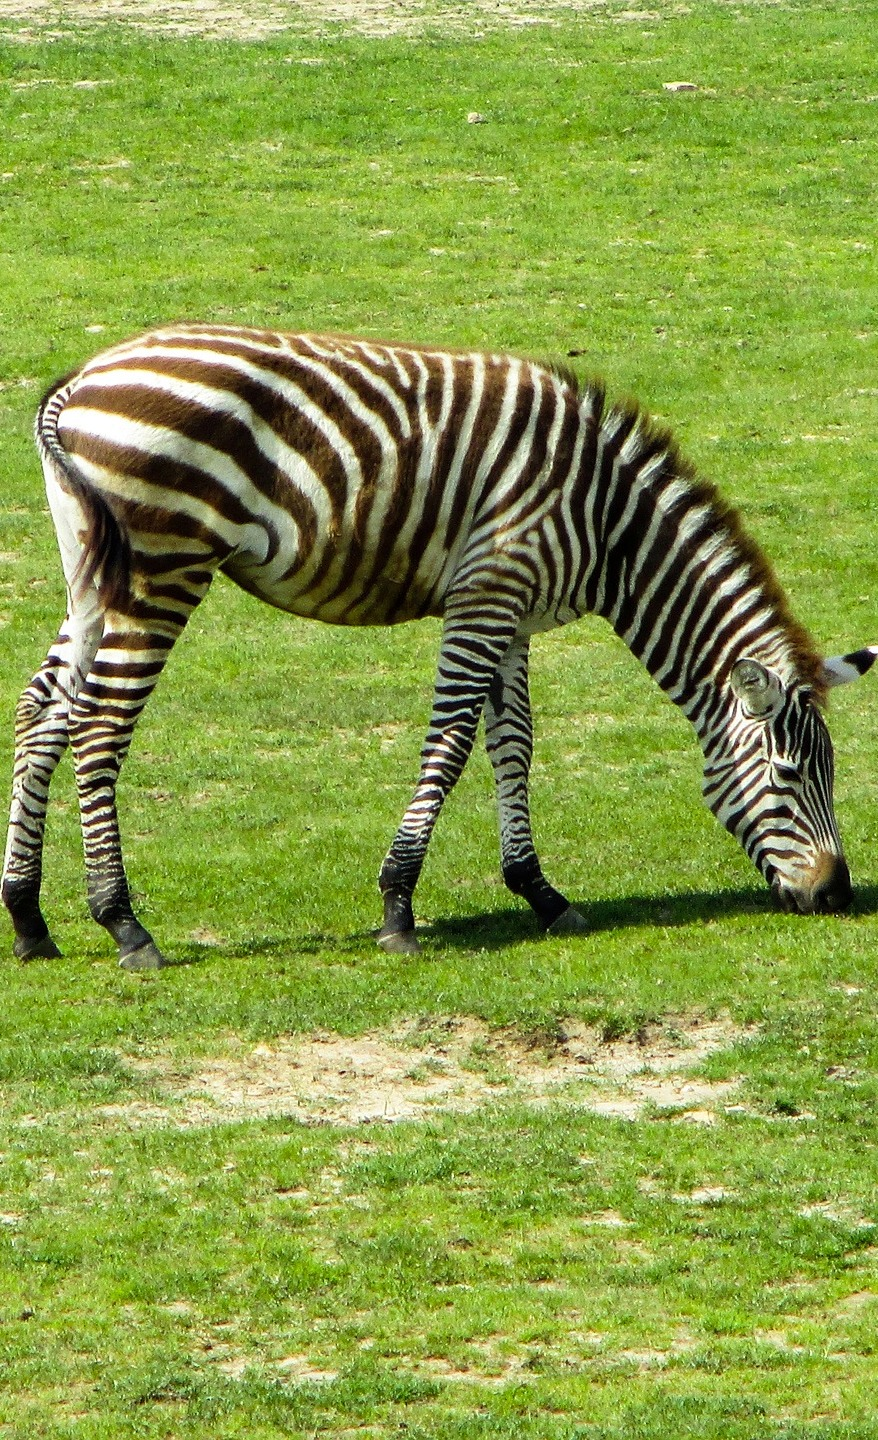 A zebra grazing on the open plain.